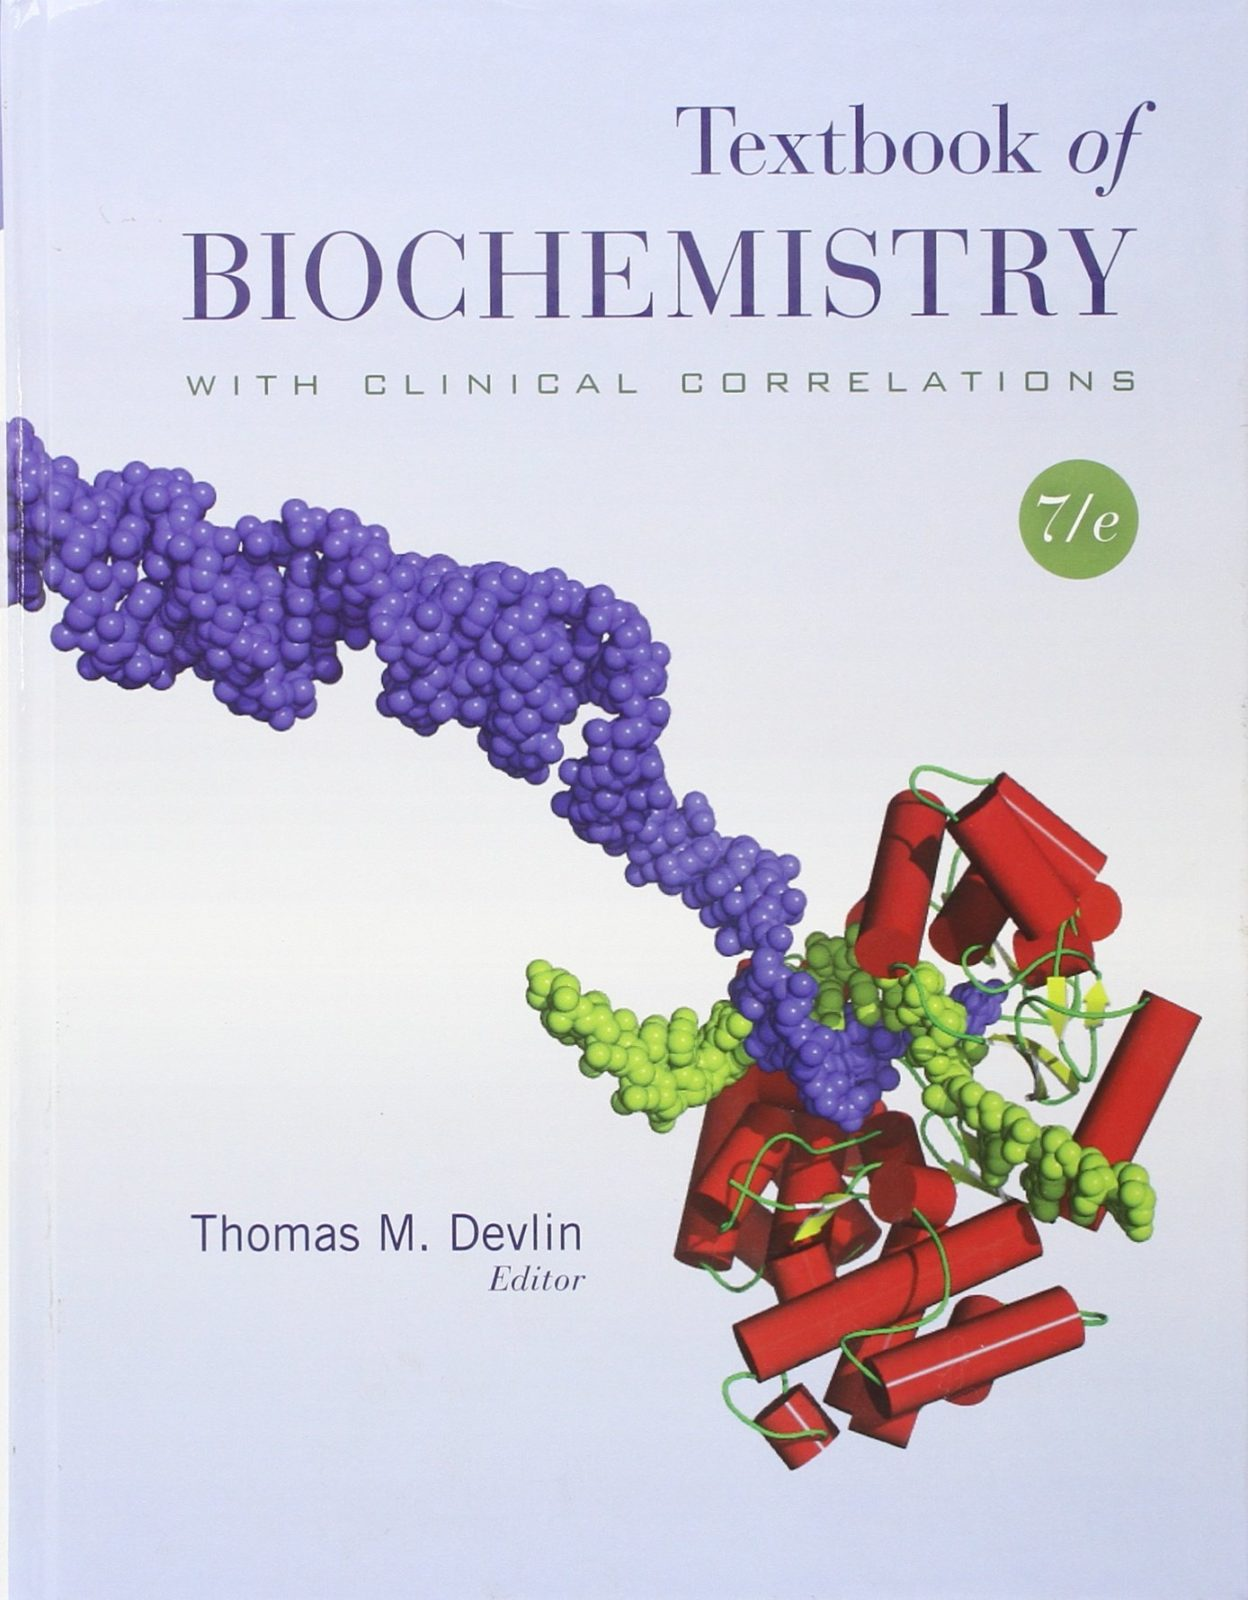 TEXTBOOK OF BIOCHEMISTRY WITH CLINICAL CORRELATION